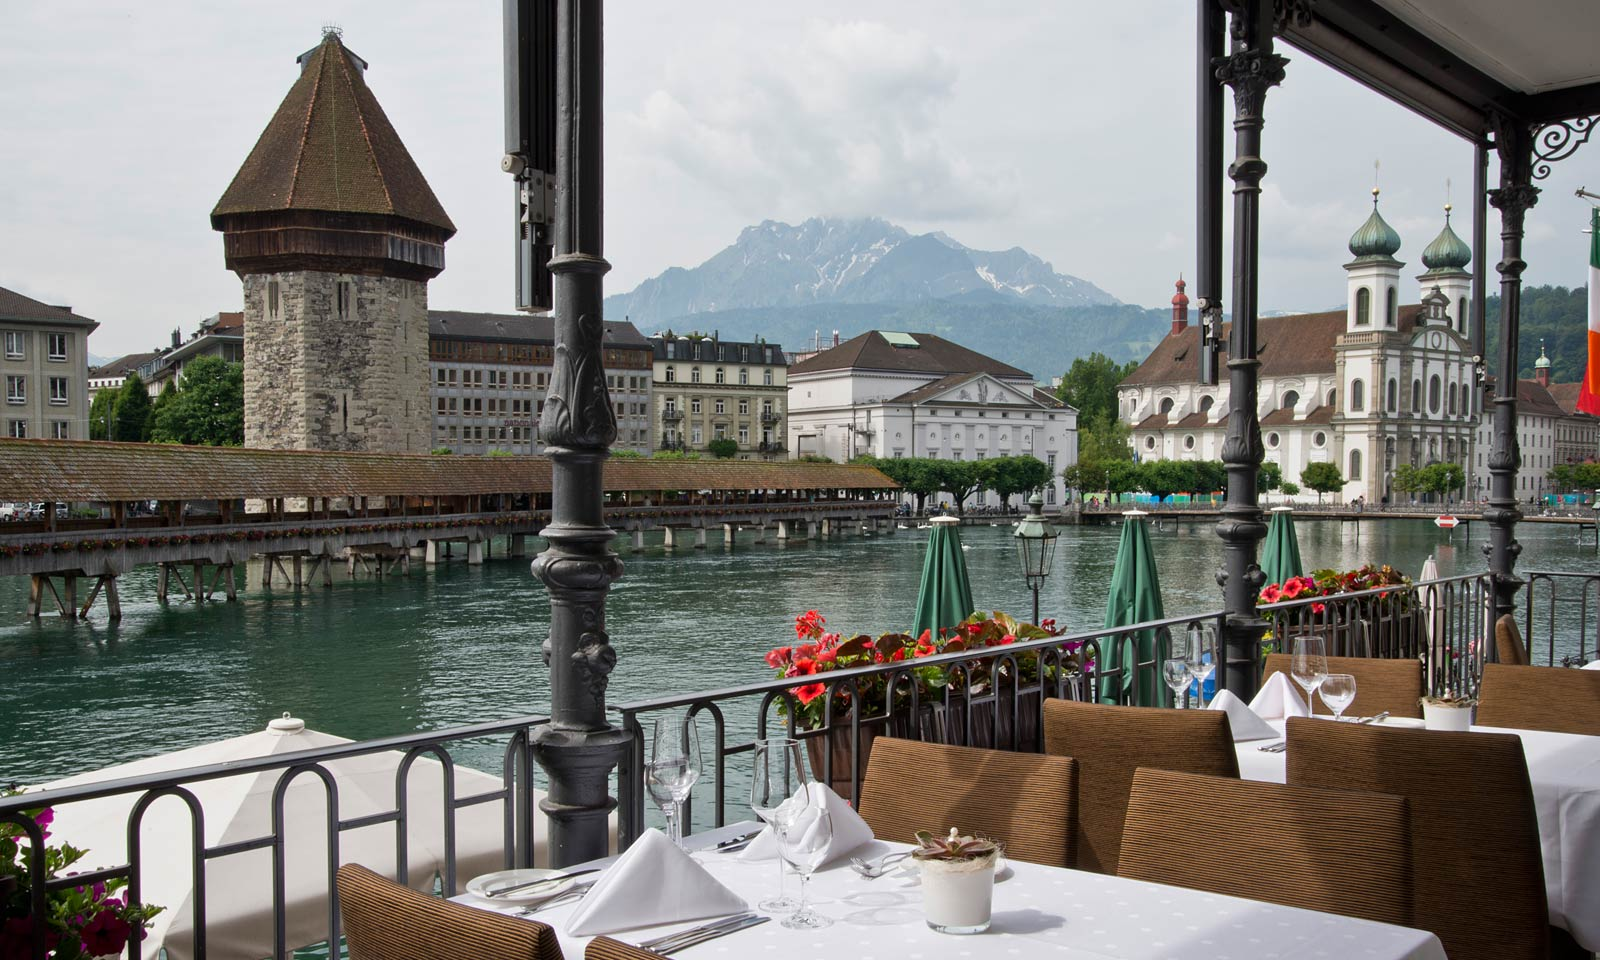 table with white napkins - things to do in Switzerland in winter